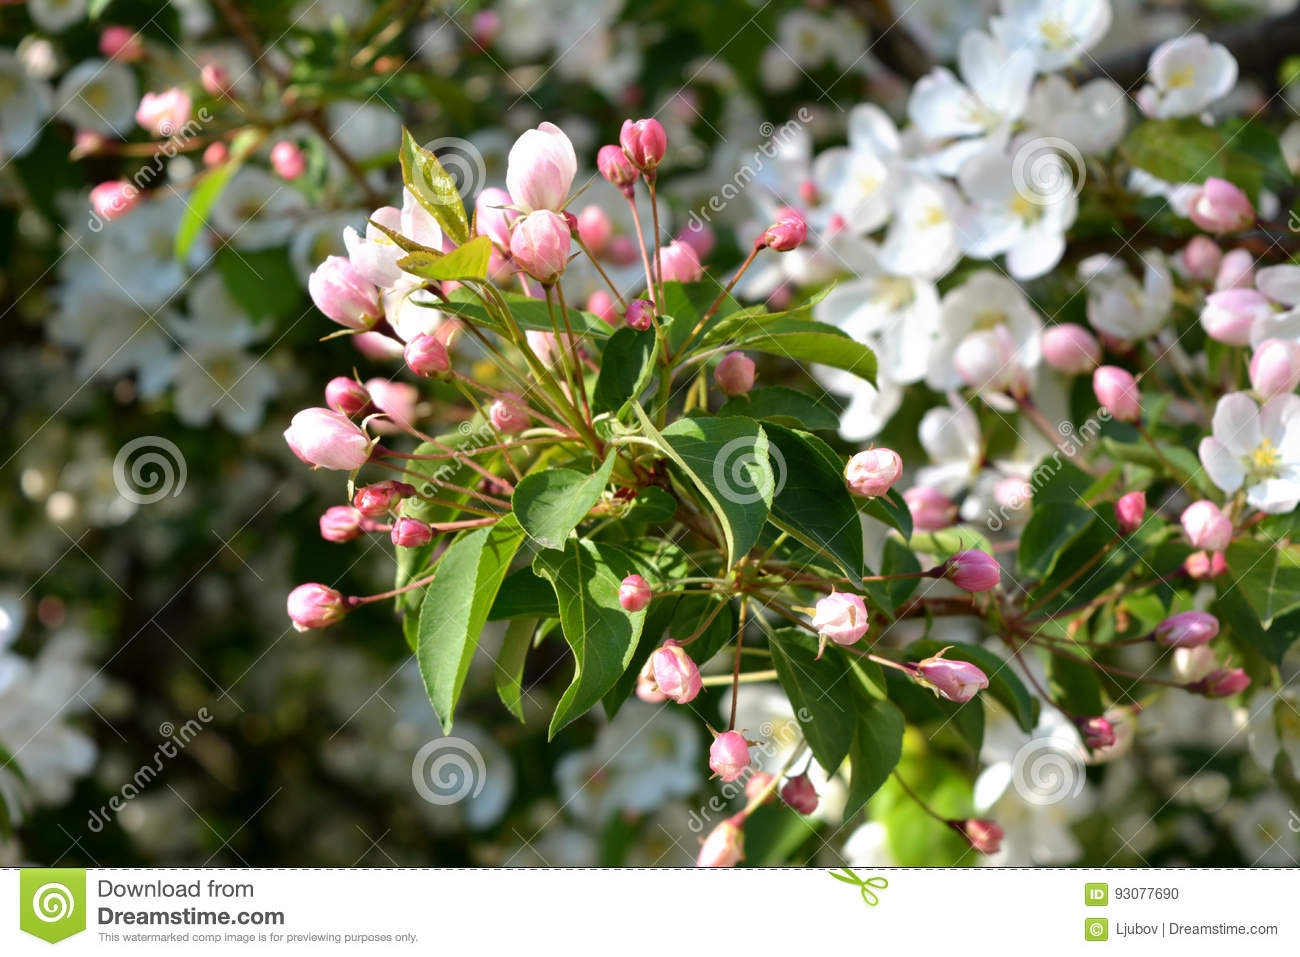 Blooming Apple Tree Unfolded Pink Buds And White Flowers Stock